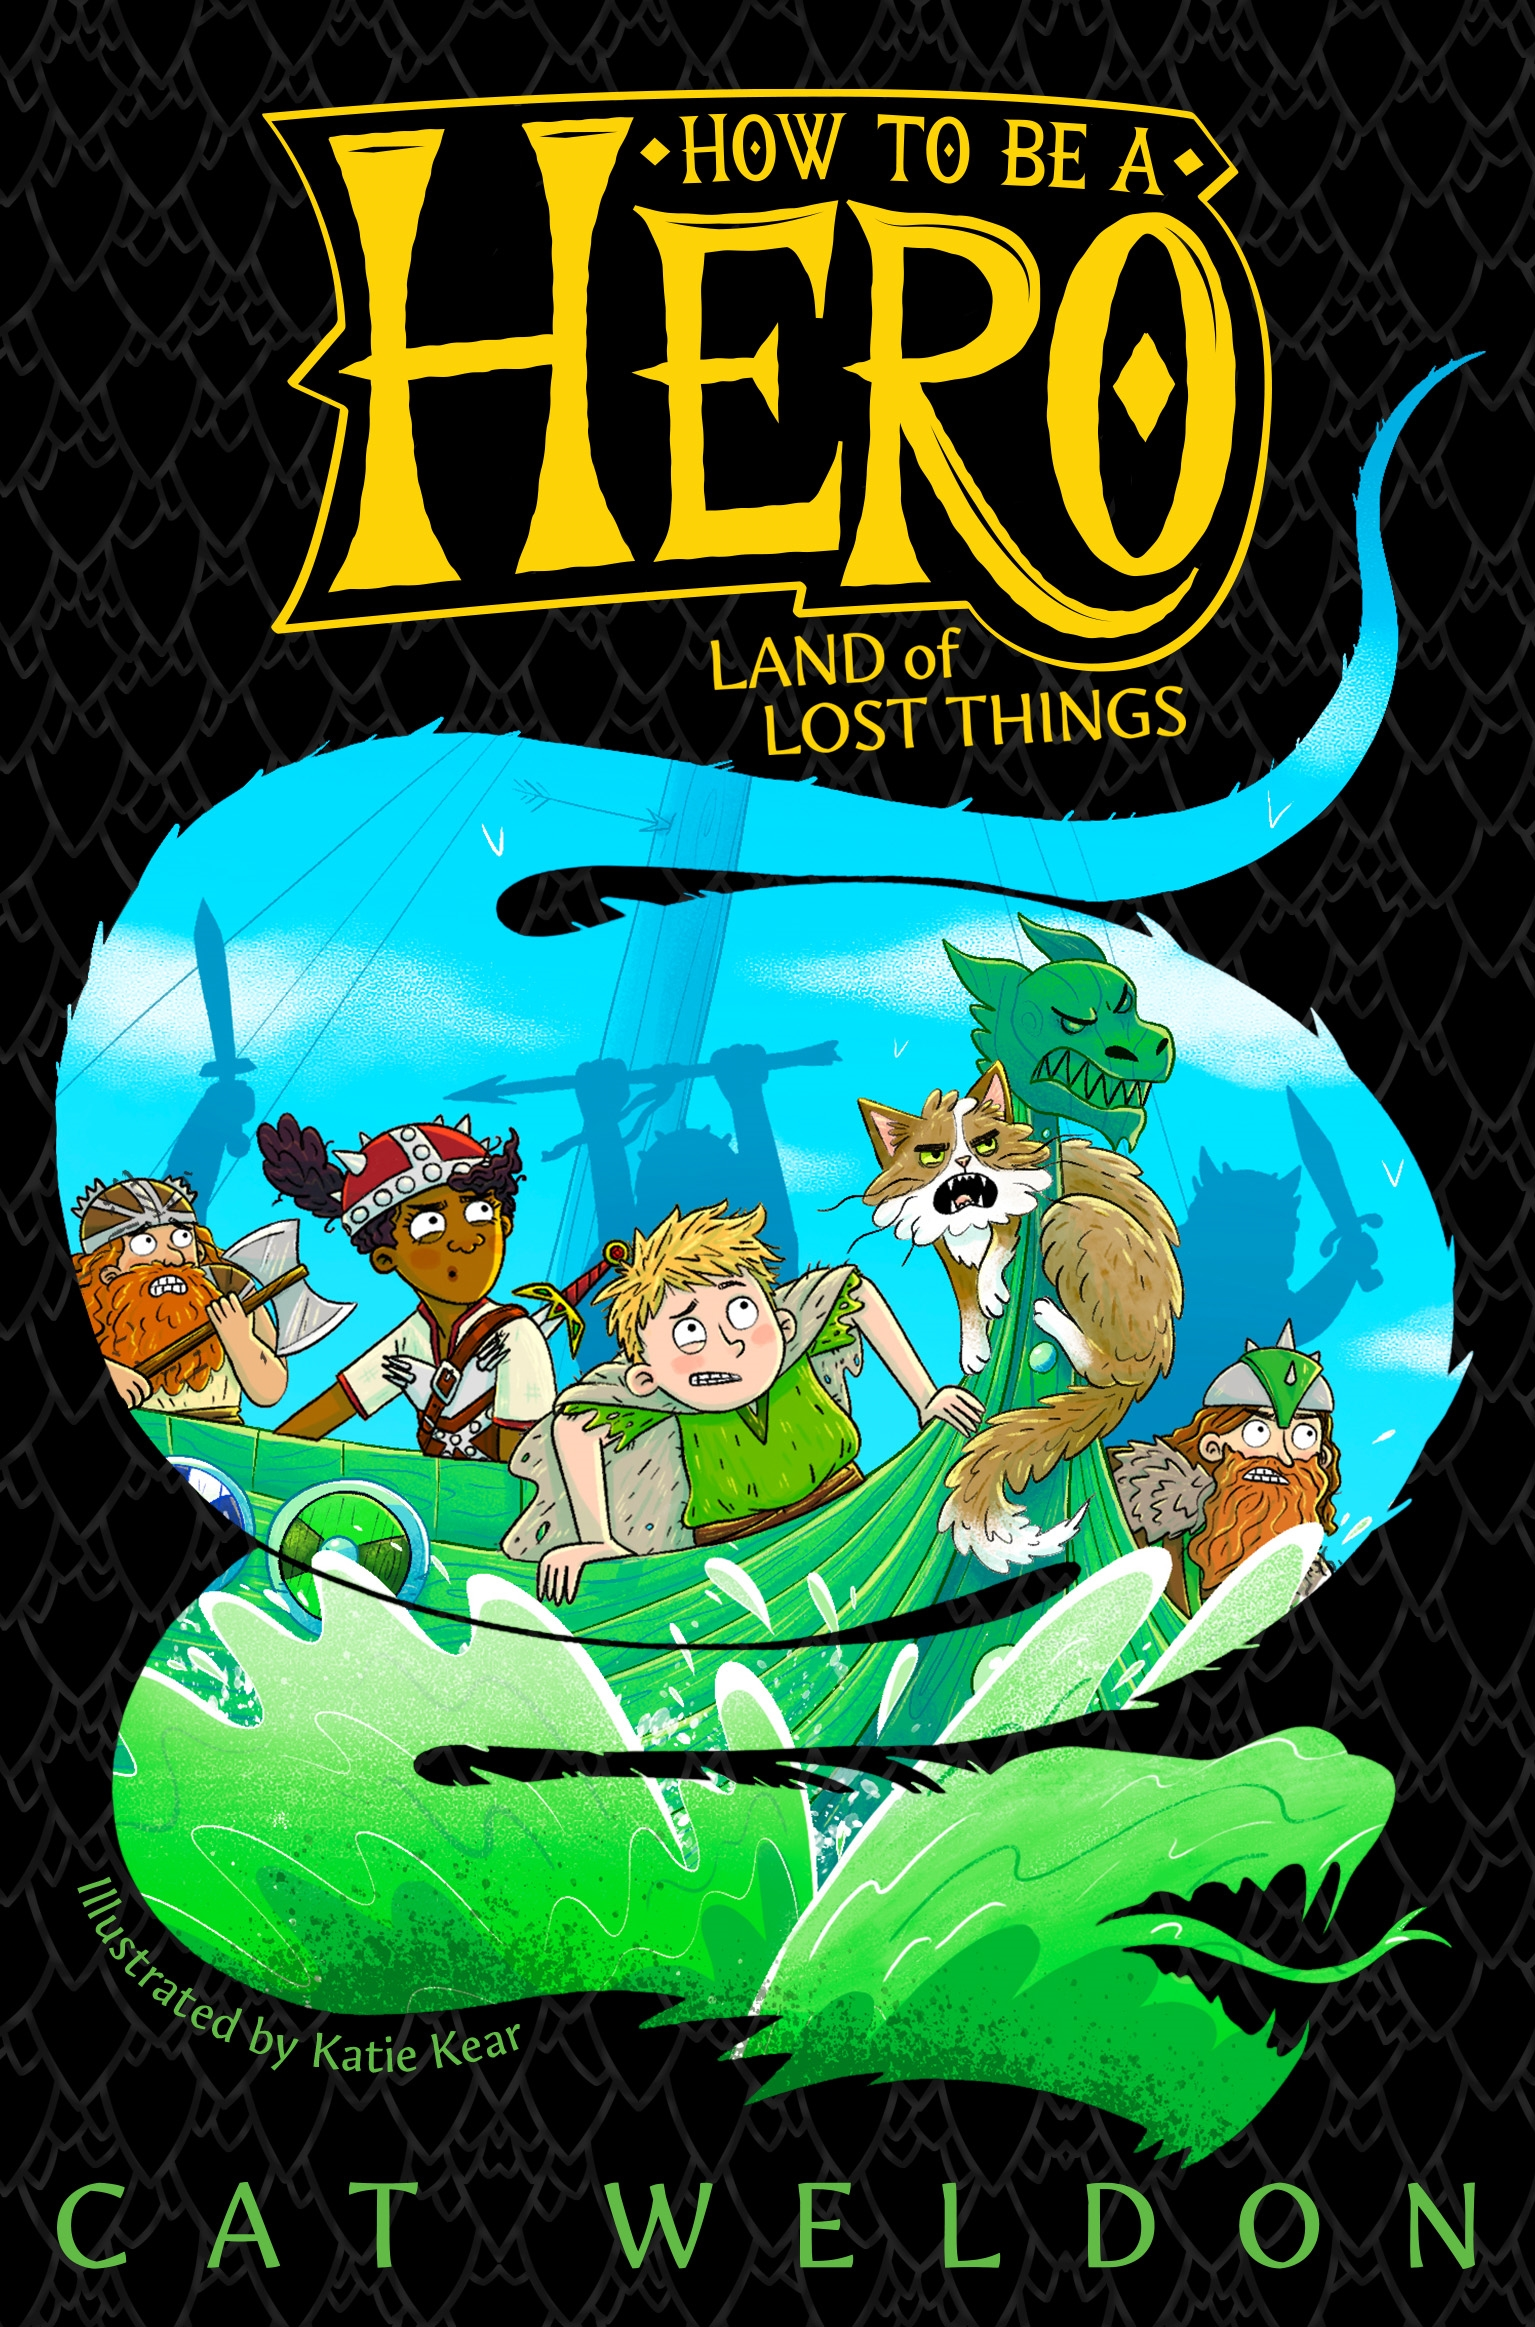 Land of Lost Things cover